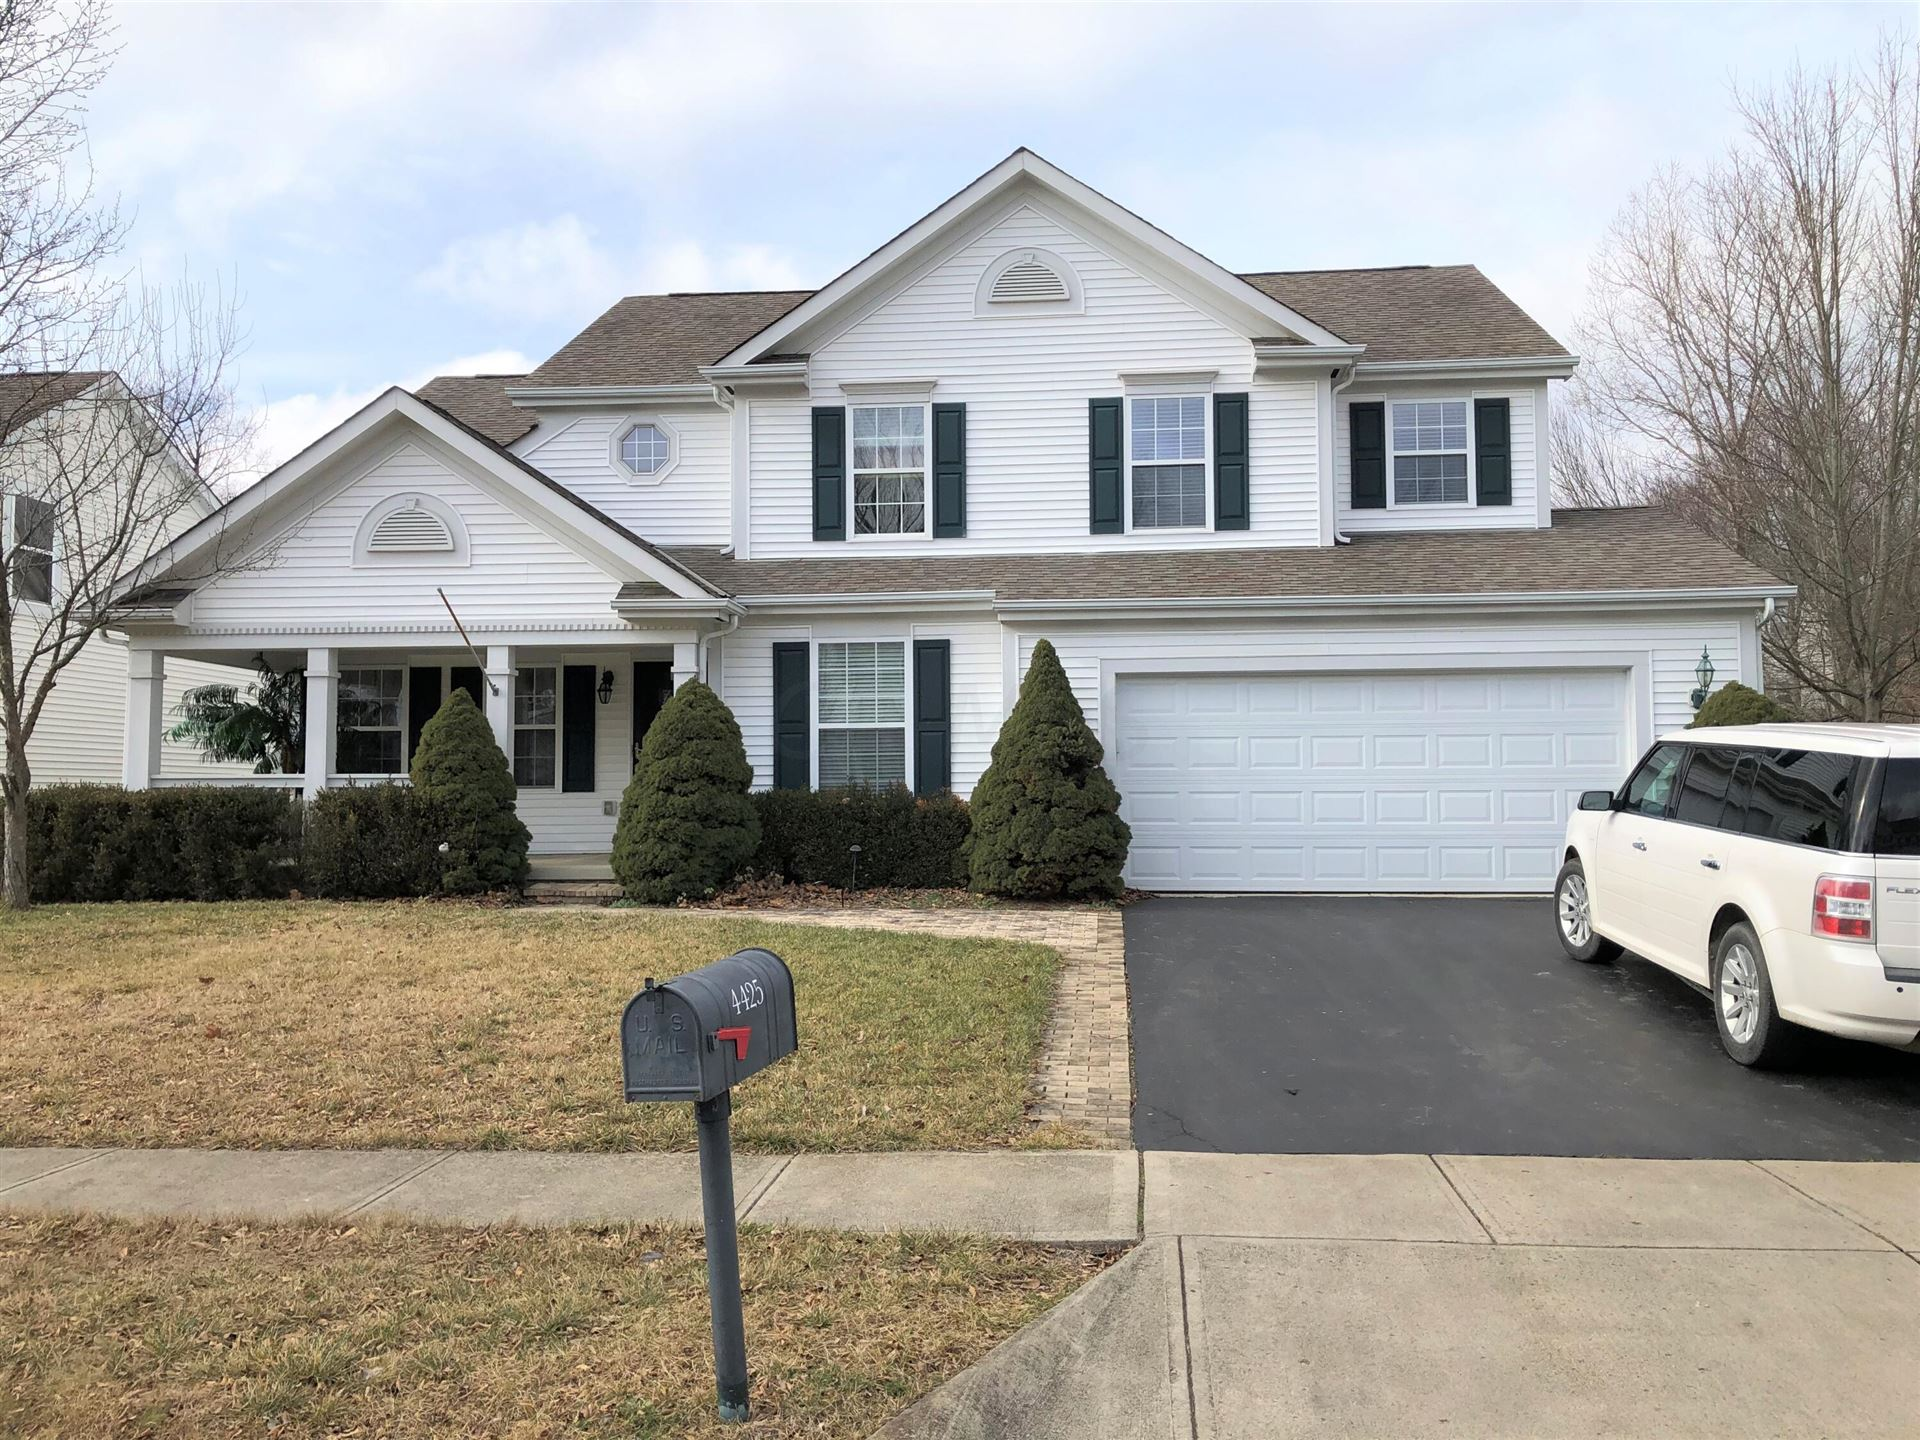 Photo of 4425 Oaks Shadow Drive, New Albany, OH 43054 (MLS # 221040319)